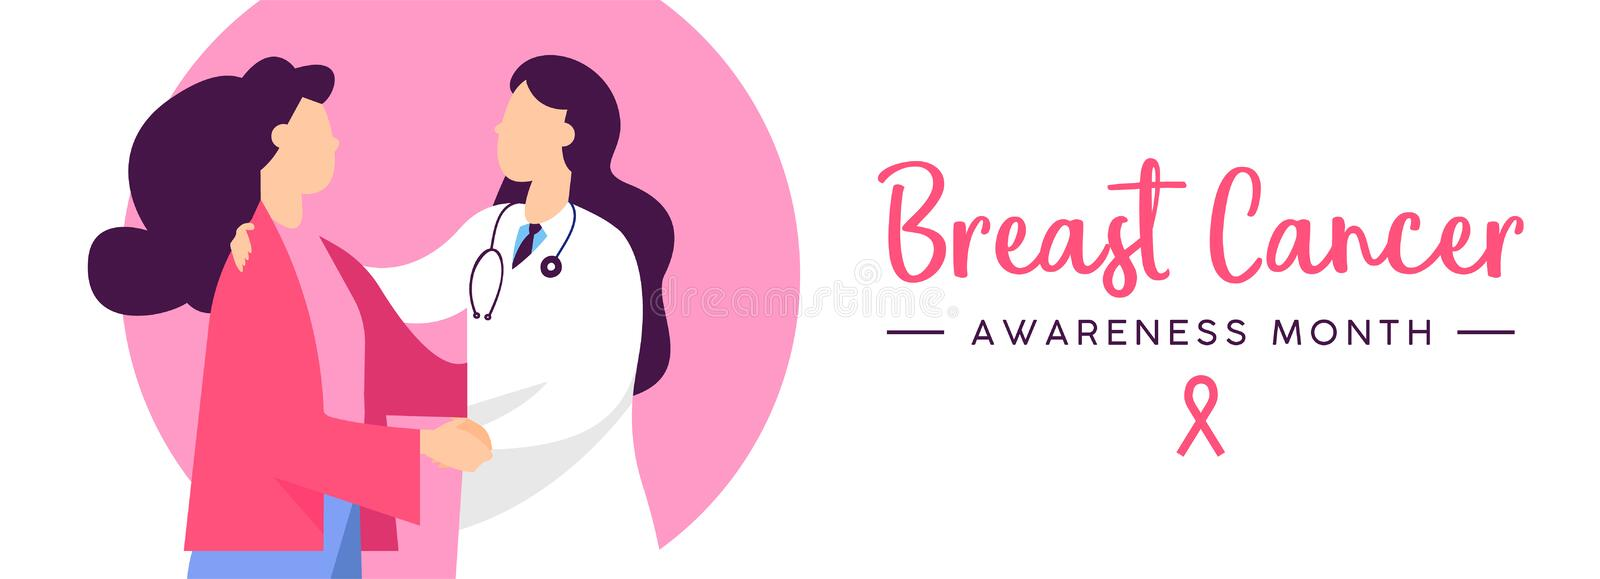 Breast Cancer Awareness health concept banner. Breast Cancer Awareness web banner illustration of doctor checkup with woman patient in pink colors, health care vector illustration